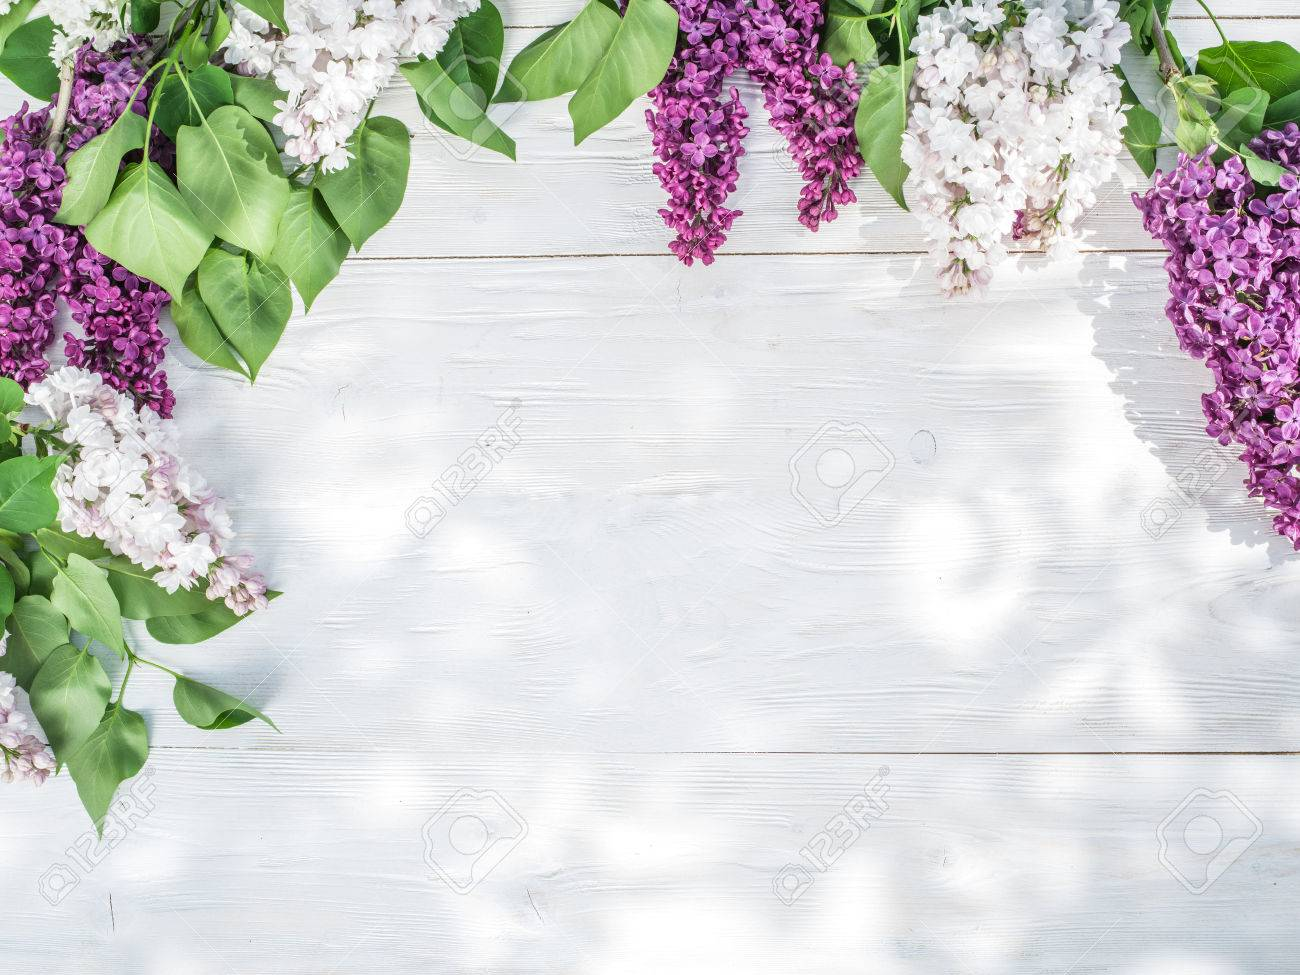 Blooming lilac flowers on the old wooden table. Standard-Bild - 46222501